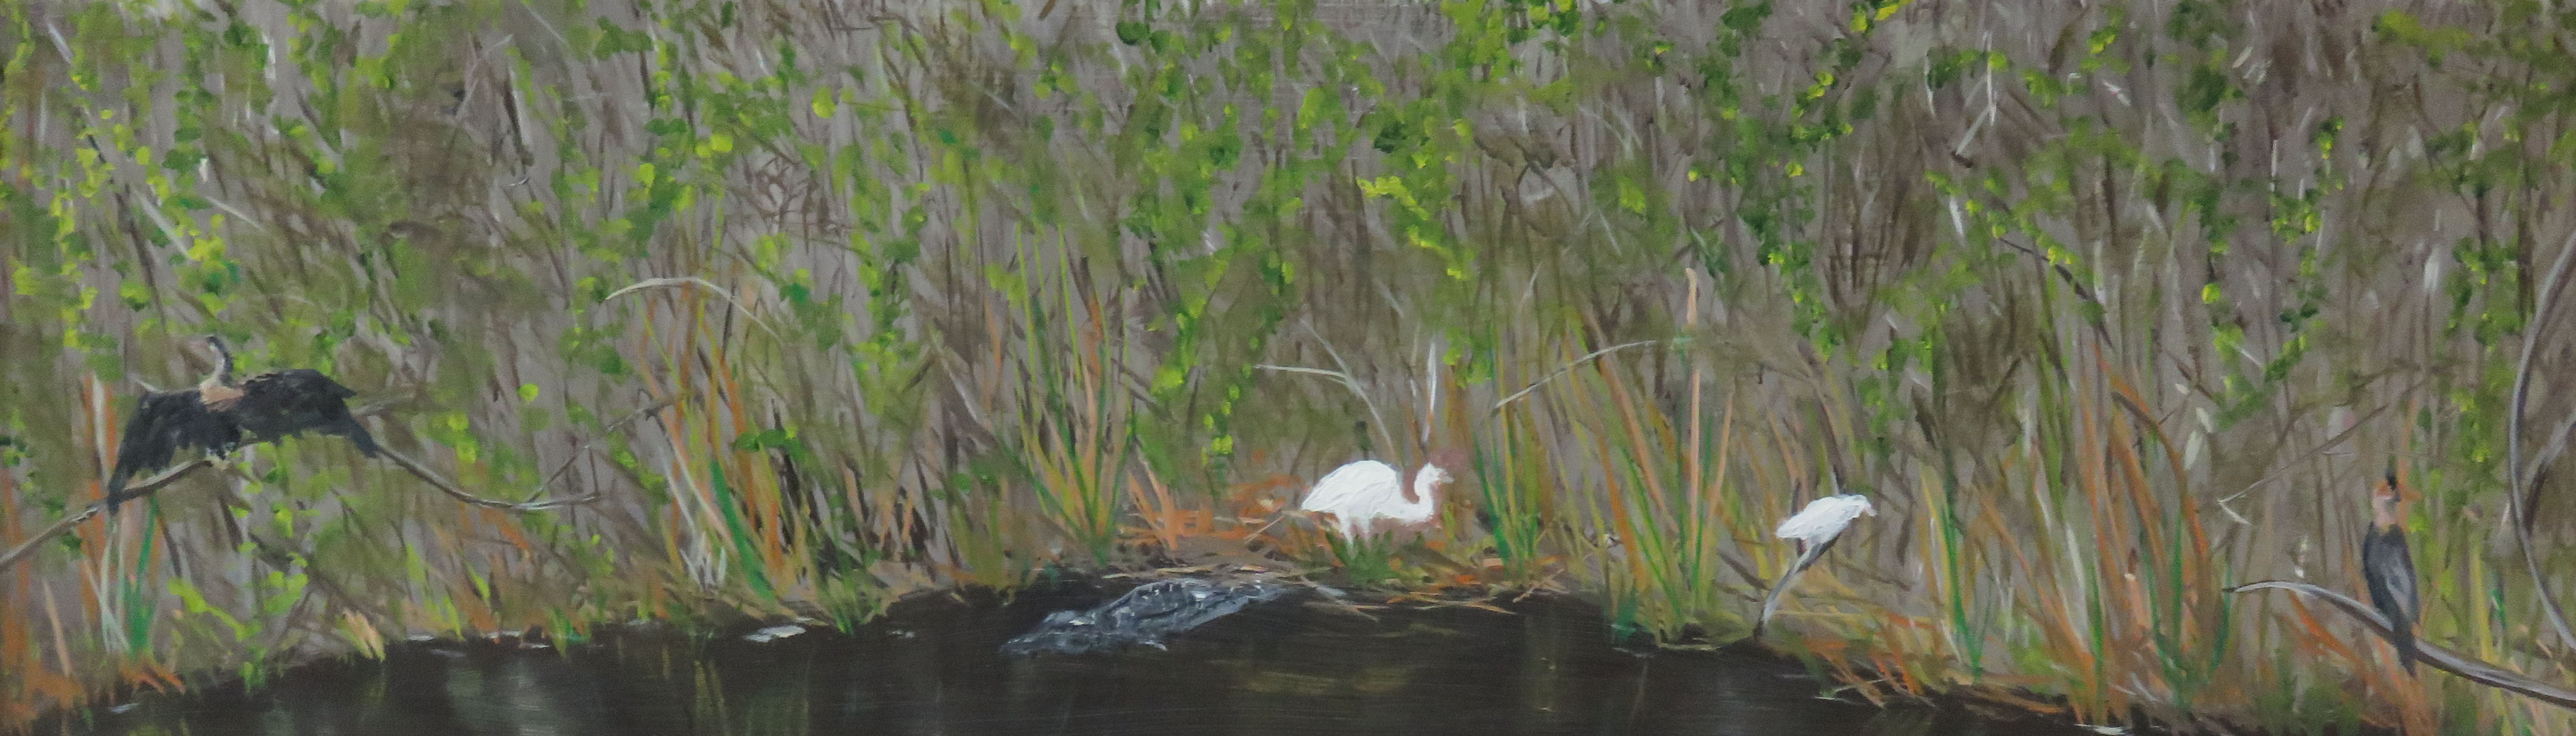 Everglades with aligator, egrets and anhingas